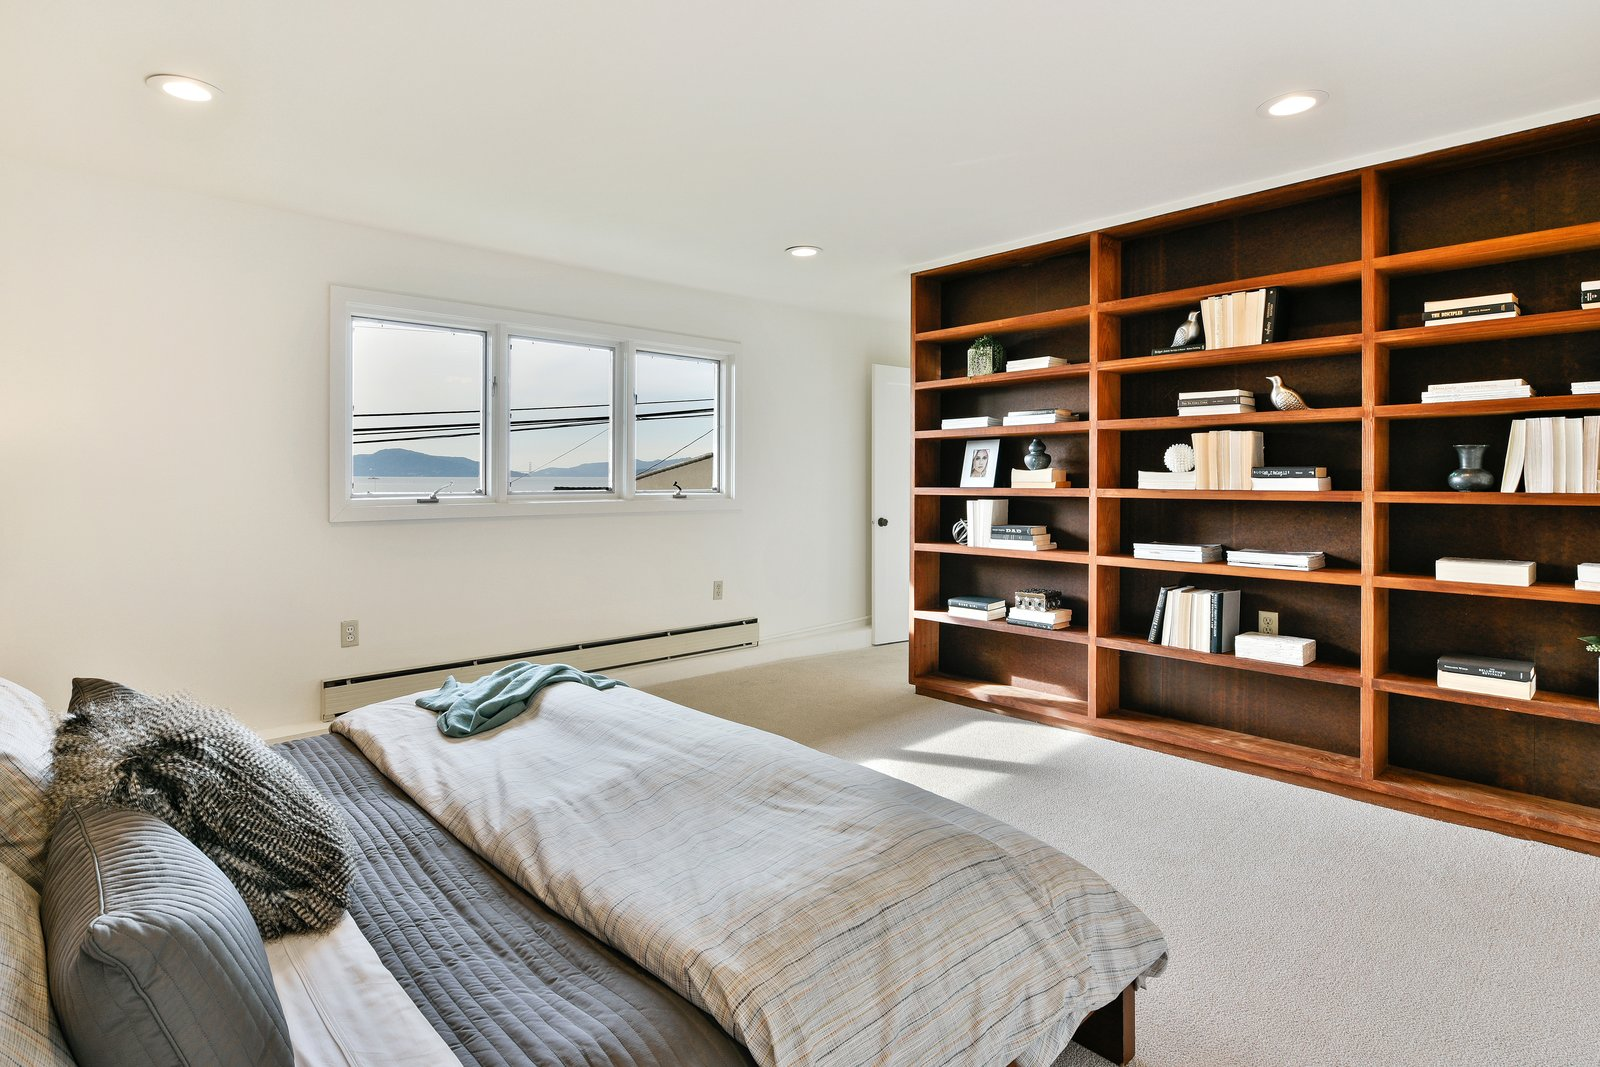 Bedroom, Bed, Shelves, Recessed Lighting, and Carpet Floor Built in bookshelves frame the Master Bedroom.  Photo 8 of 14 in A Bay Area Jewel With Golden Gate Views Wants $1.55M